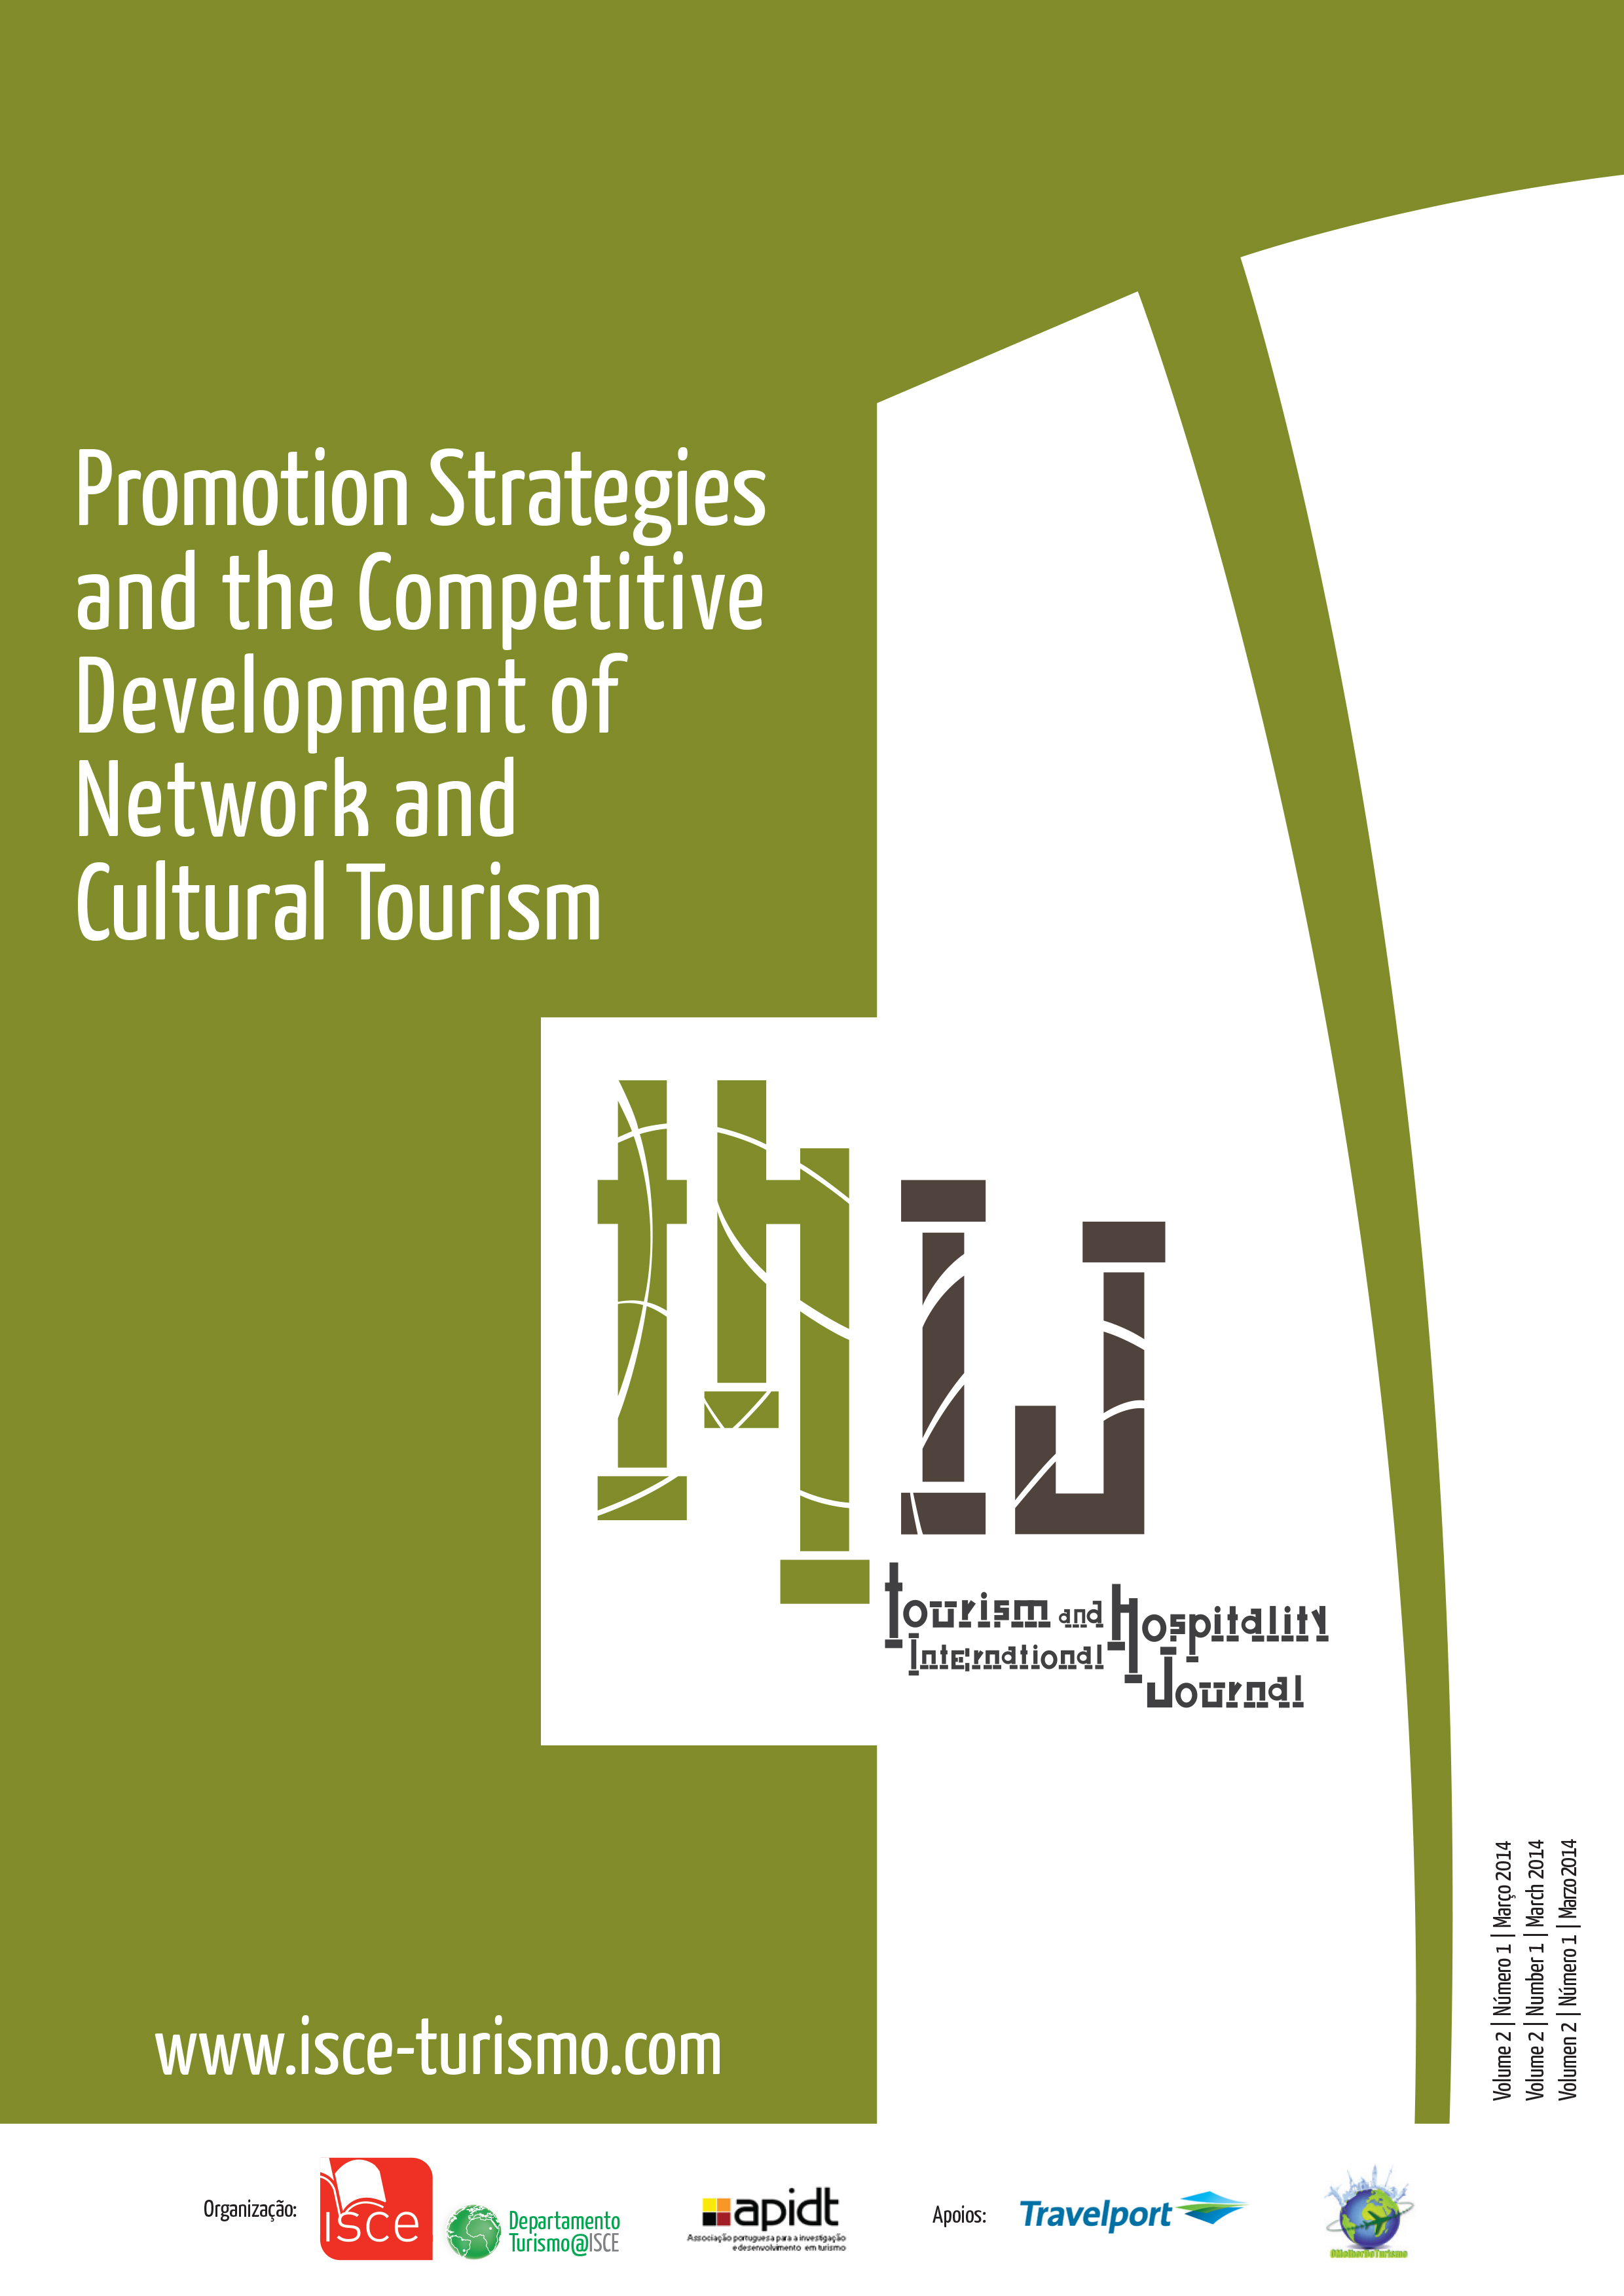 Promotions Strategies and the Competitive Development of Network and Cultural Tourism